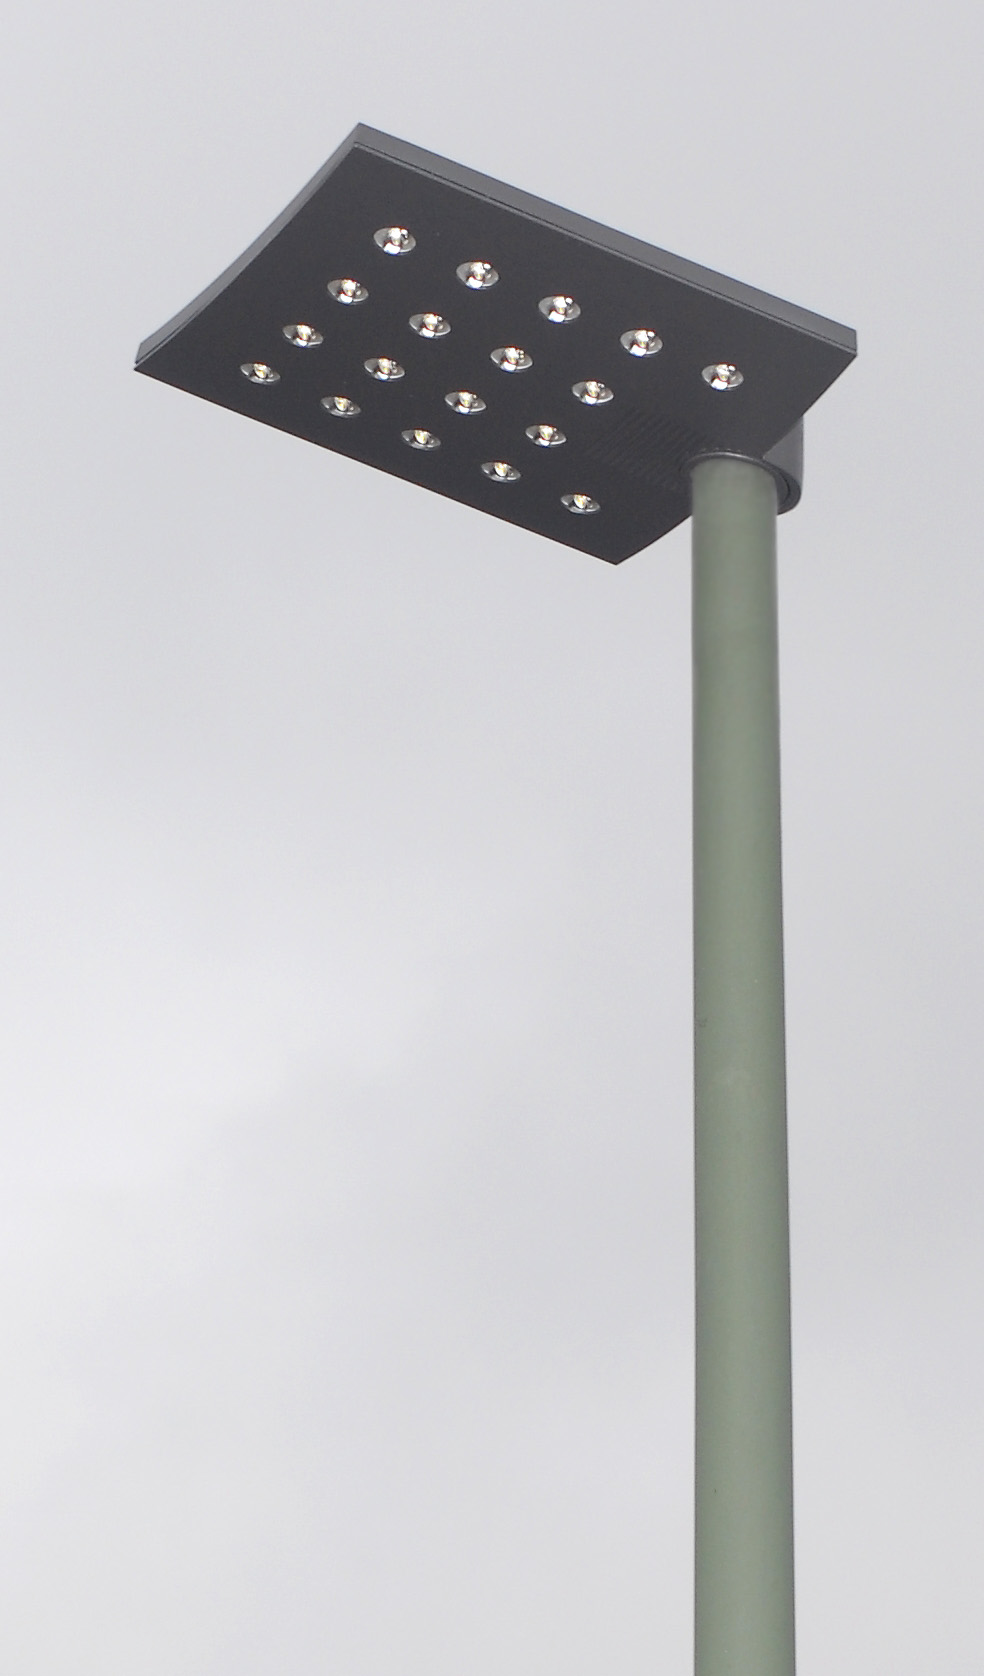 technology light street streetlight of the learn future led lighting streetlights header